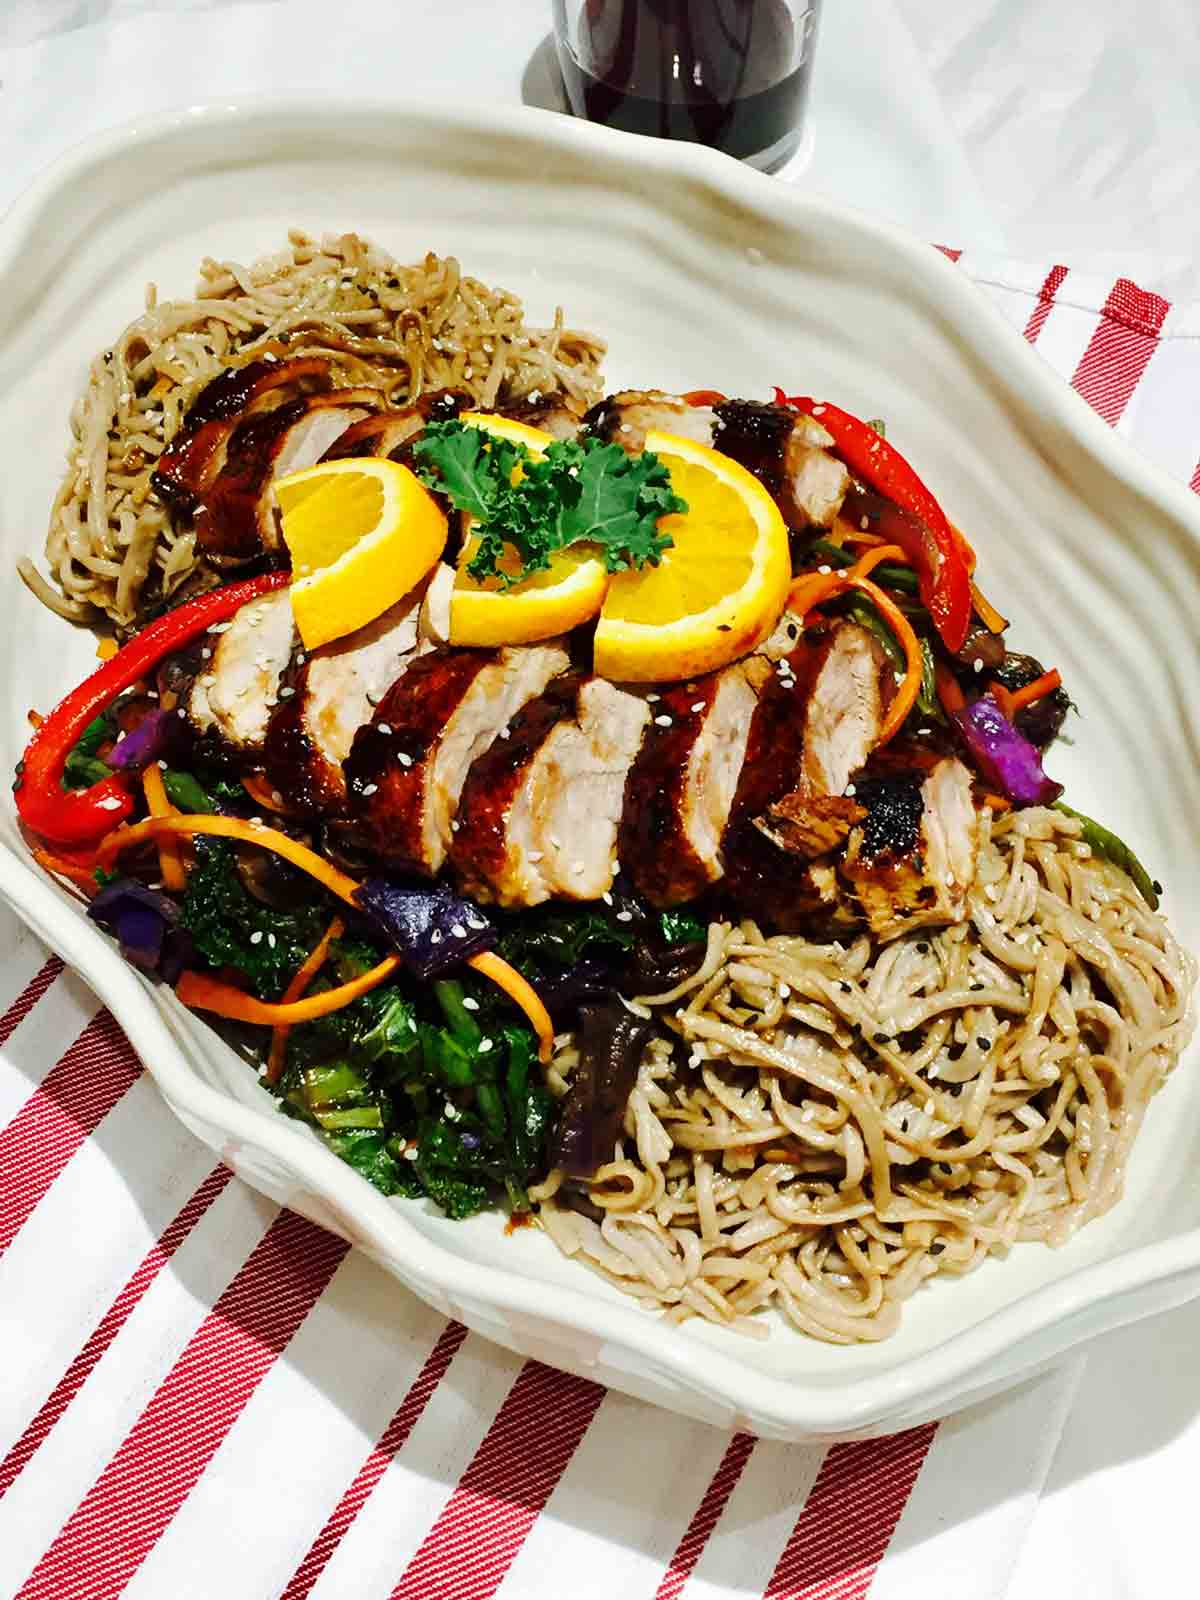 Shake up your dinner routine with this delightful duck on soba buckwheat noodles, augmented by amazing Asian spices.